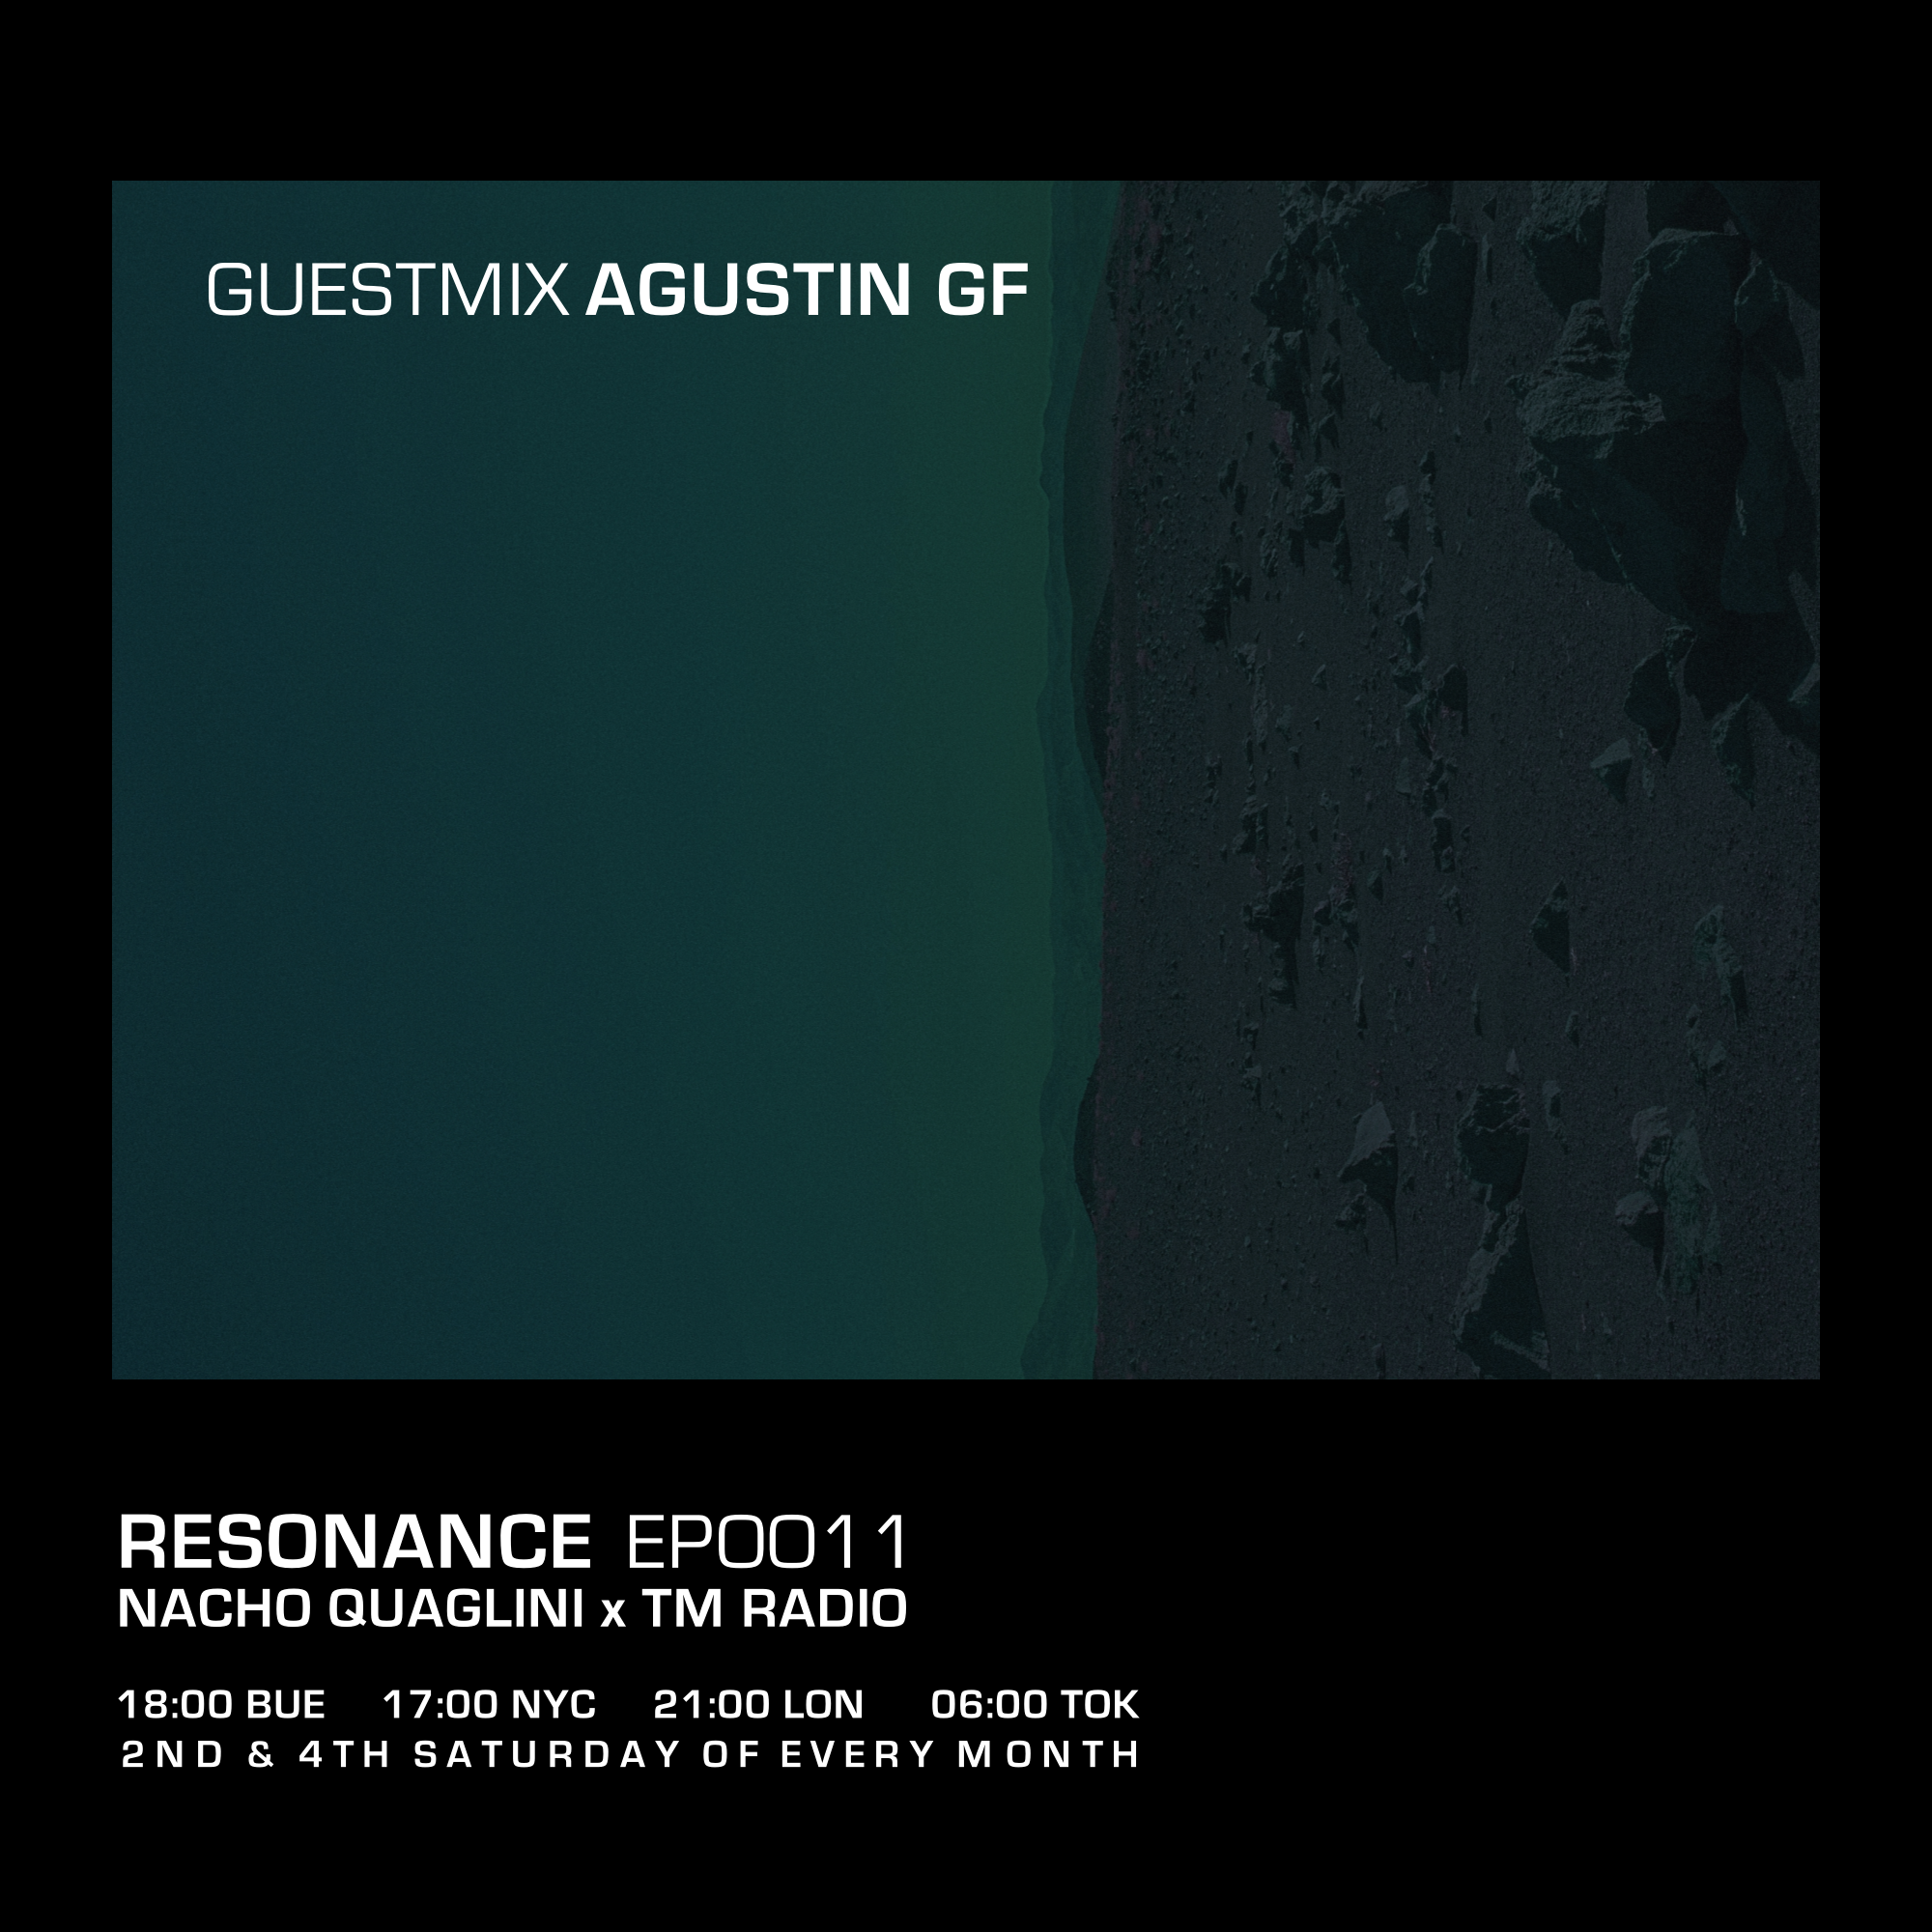 Resonance :: Resonance / Ep. 0011 / January 2021 / Guestmix: Agustin GF (aired on January 23rd) banner logo